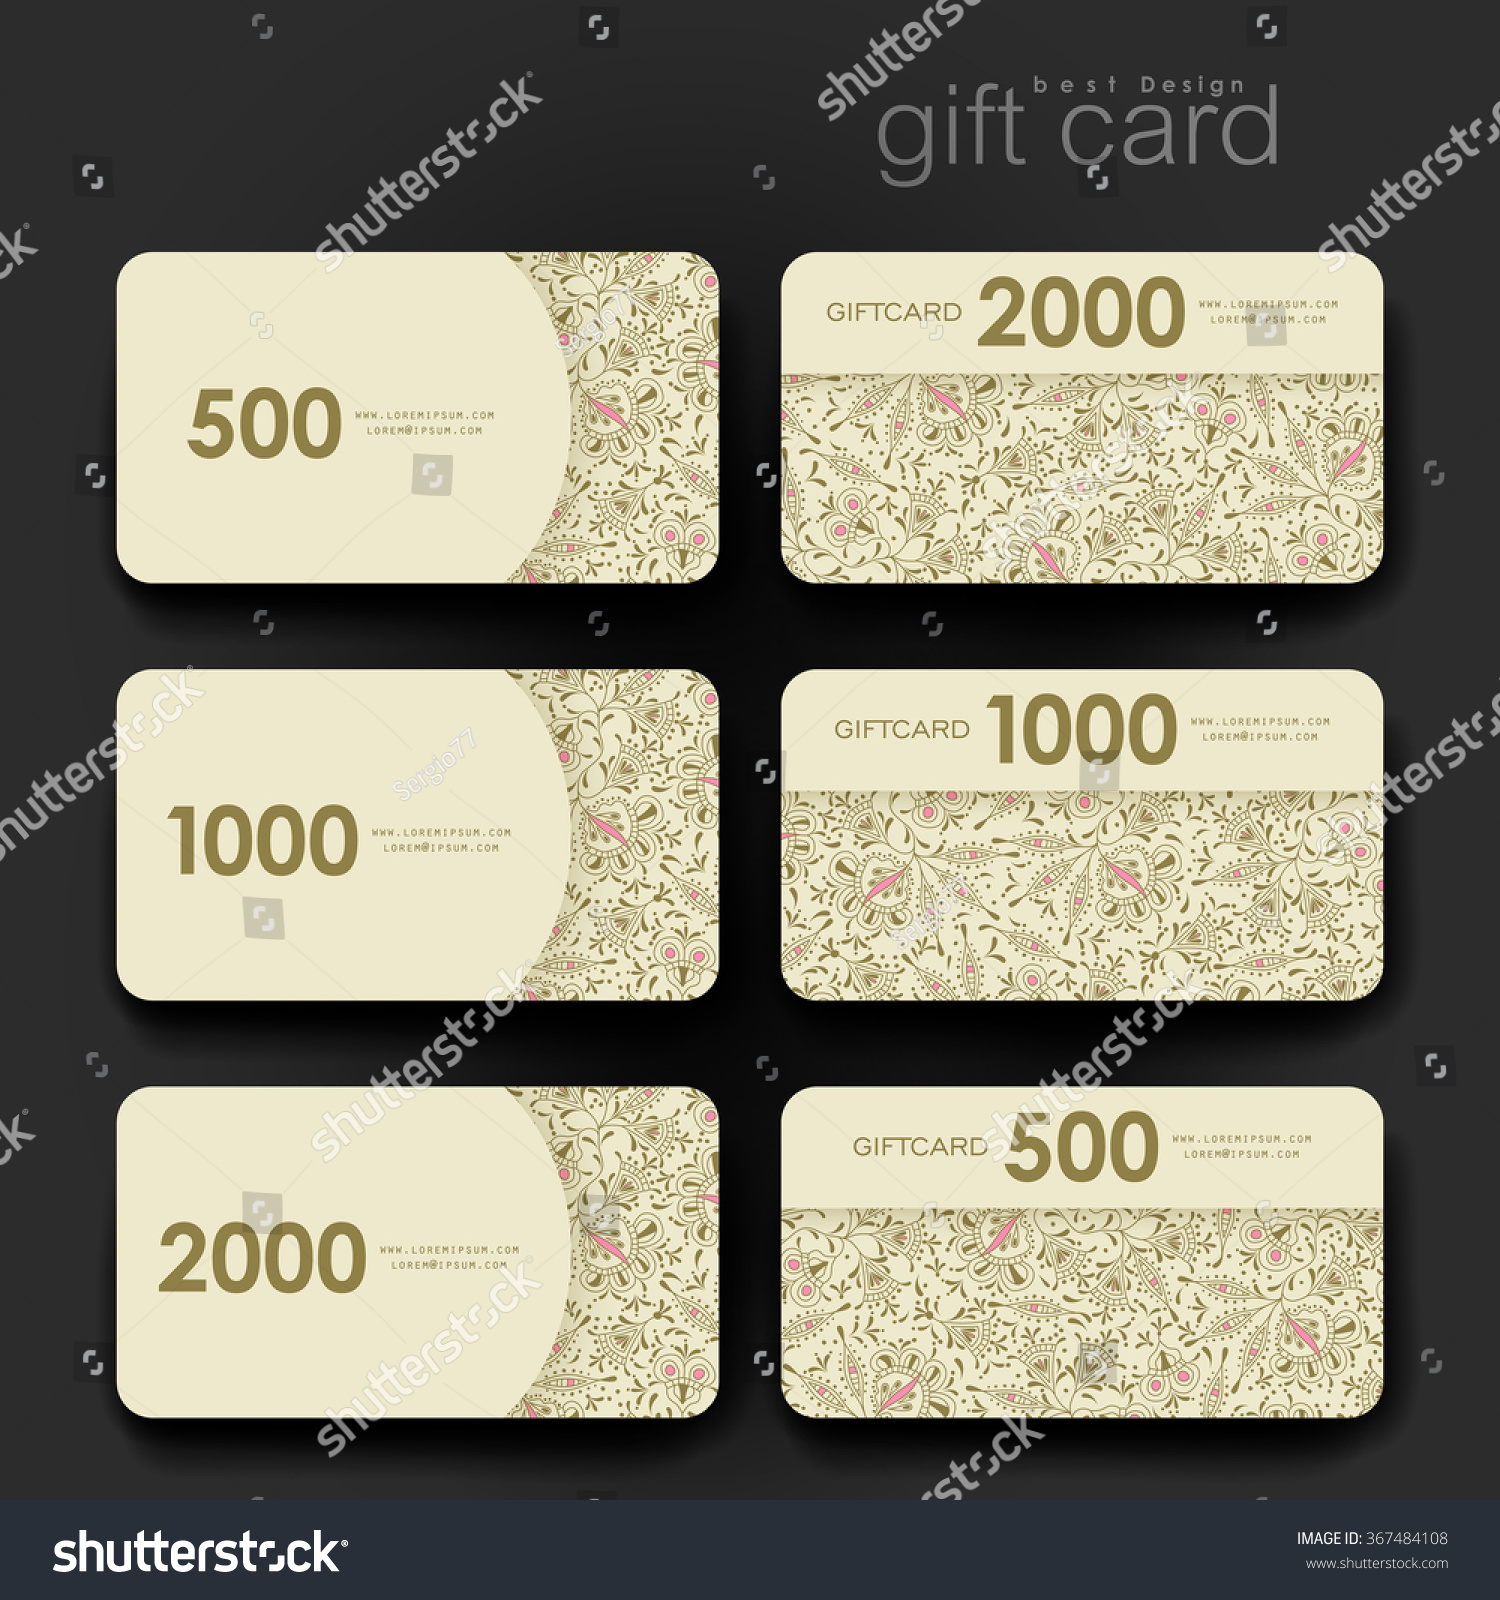 Design of discount card - Gift Coupon Discount Card Template With Floral Ornament Background Creative Layout Design